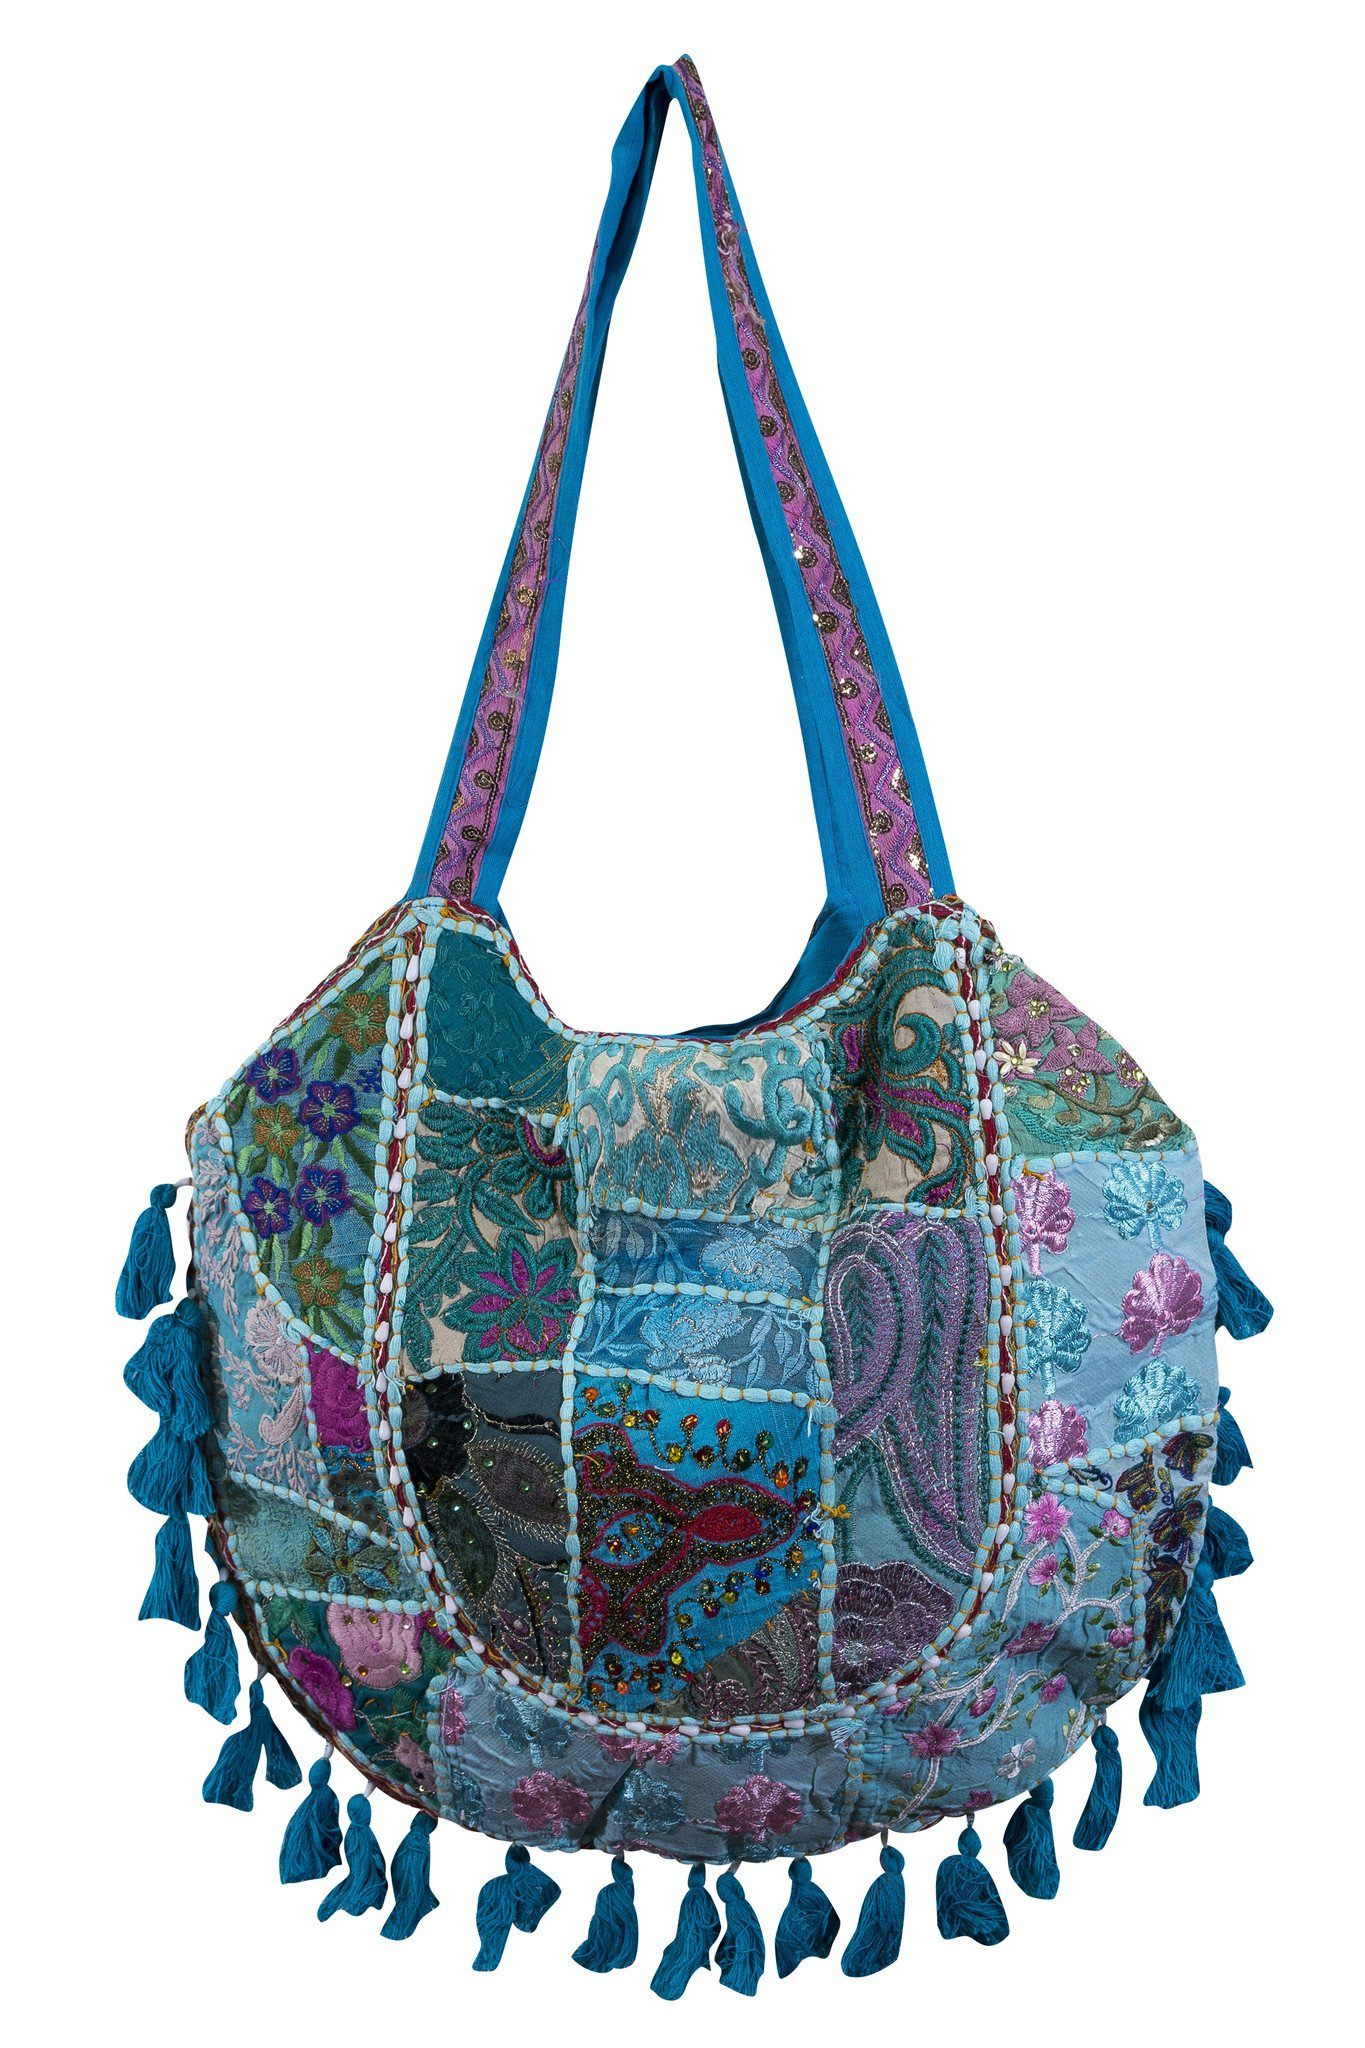 Blue Ethnic Indian style Embroidered Bag Shoulder Strap - CCCollections